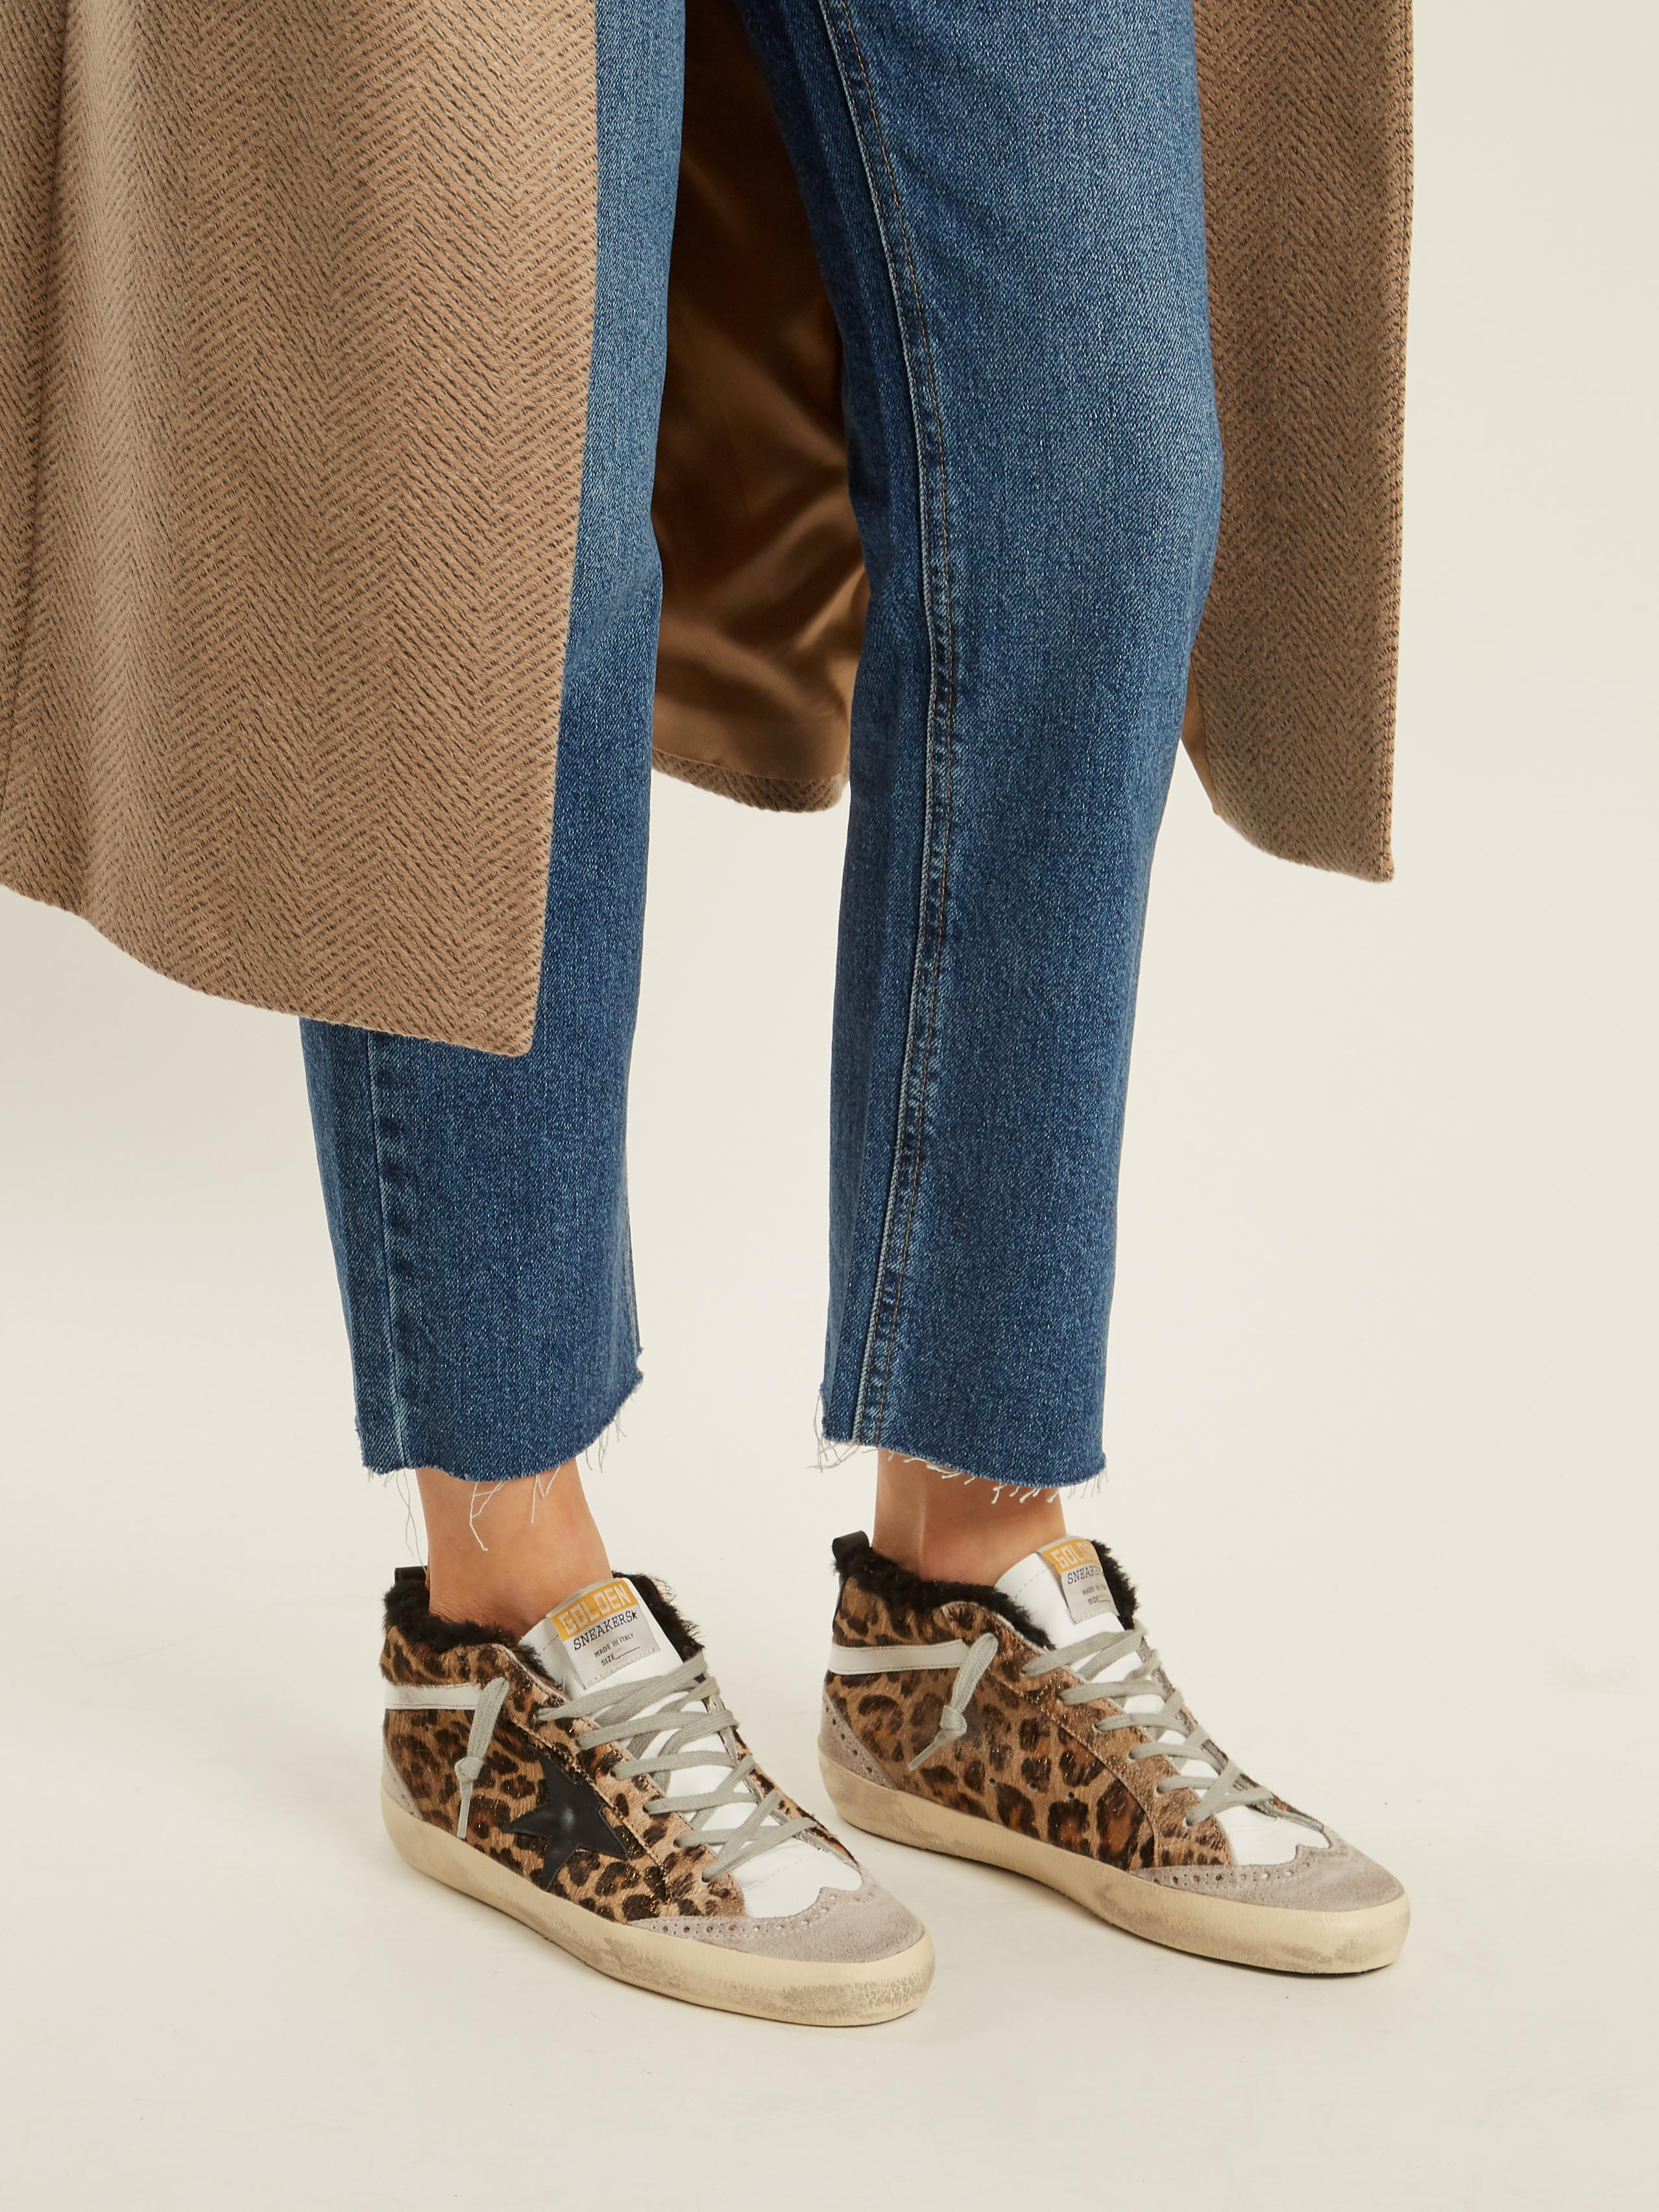 Golden Goose Deluxe Brand Mid Star Leopard Print Shearling